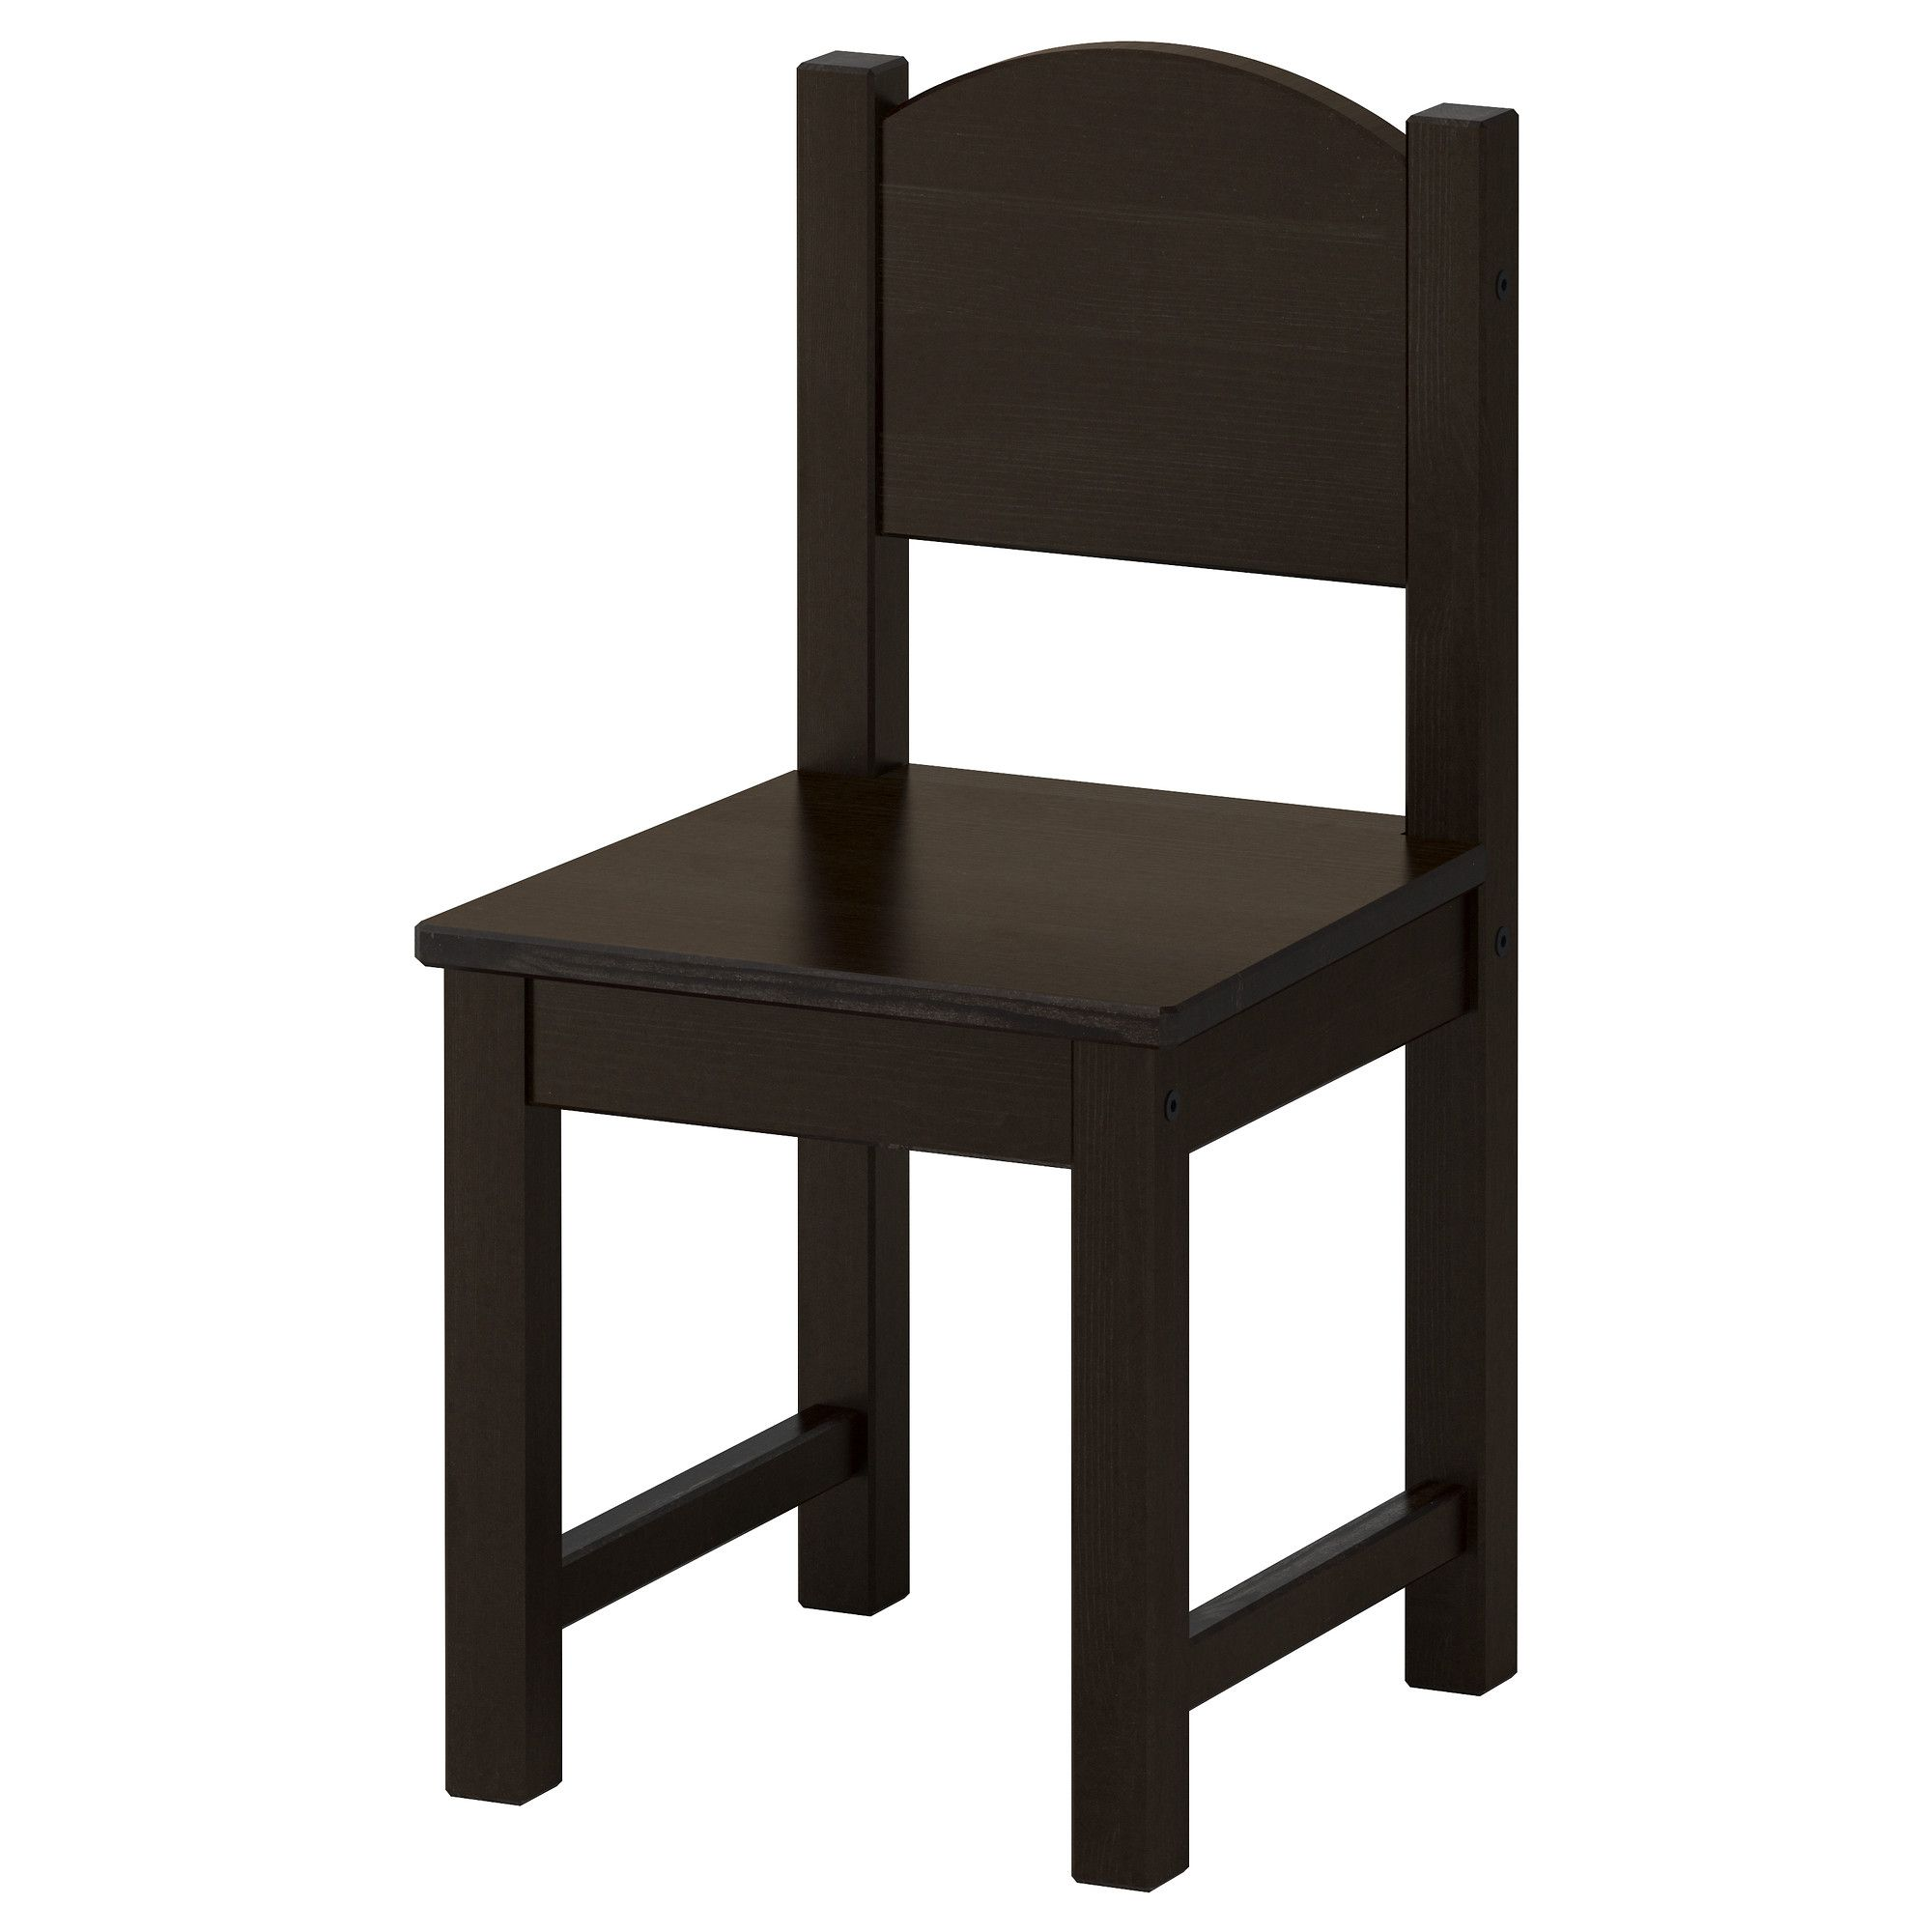 SUNDVIK Childrenu0027s Chair, Black Brown